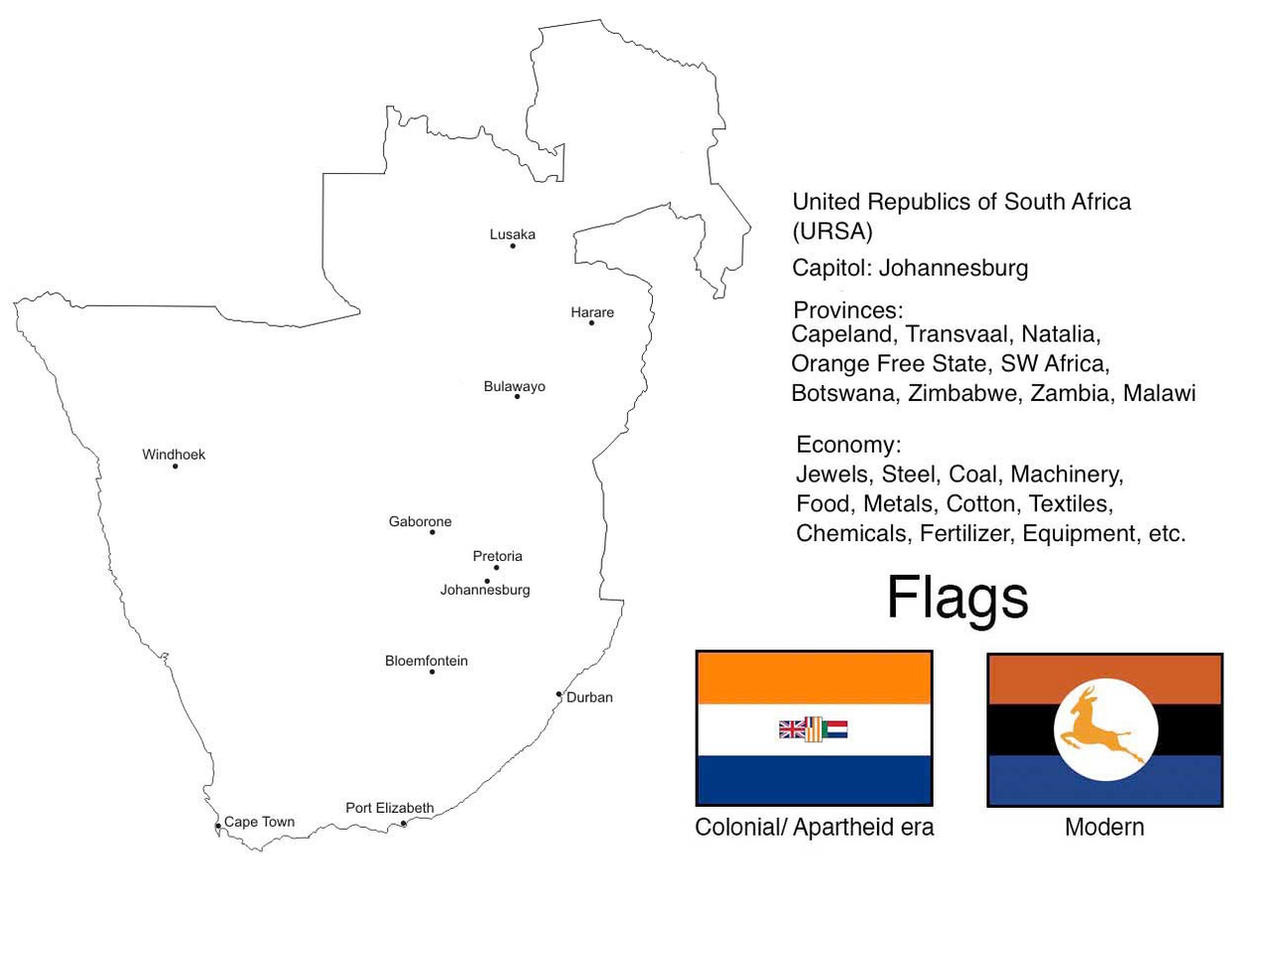 United Republics of South Africa by mrbill6ishere